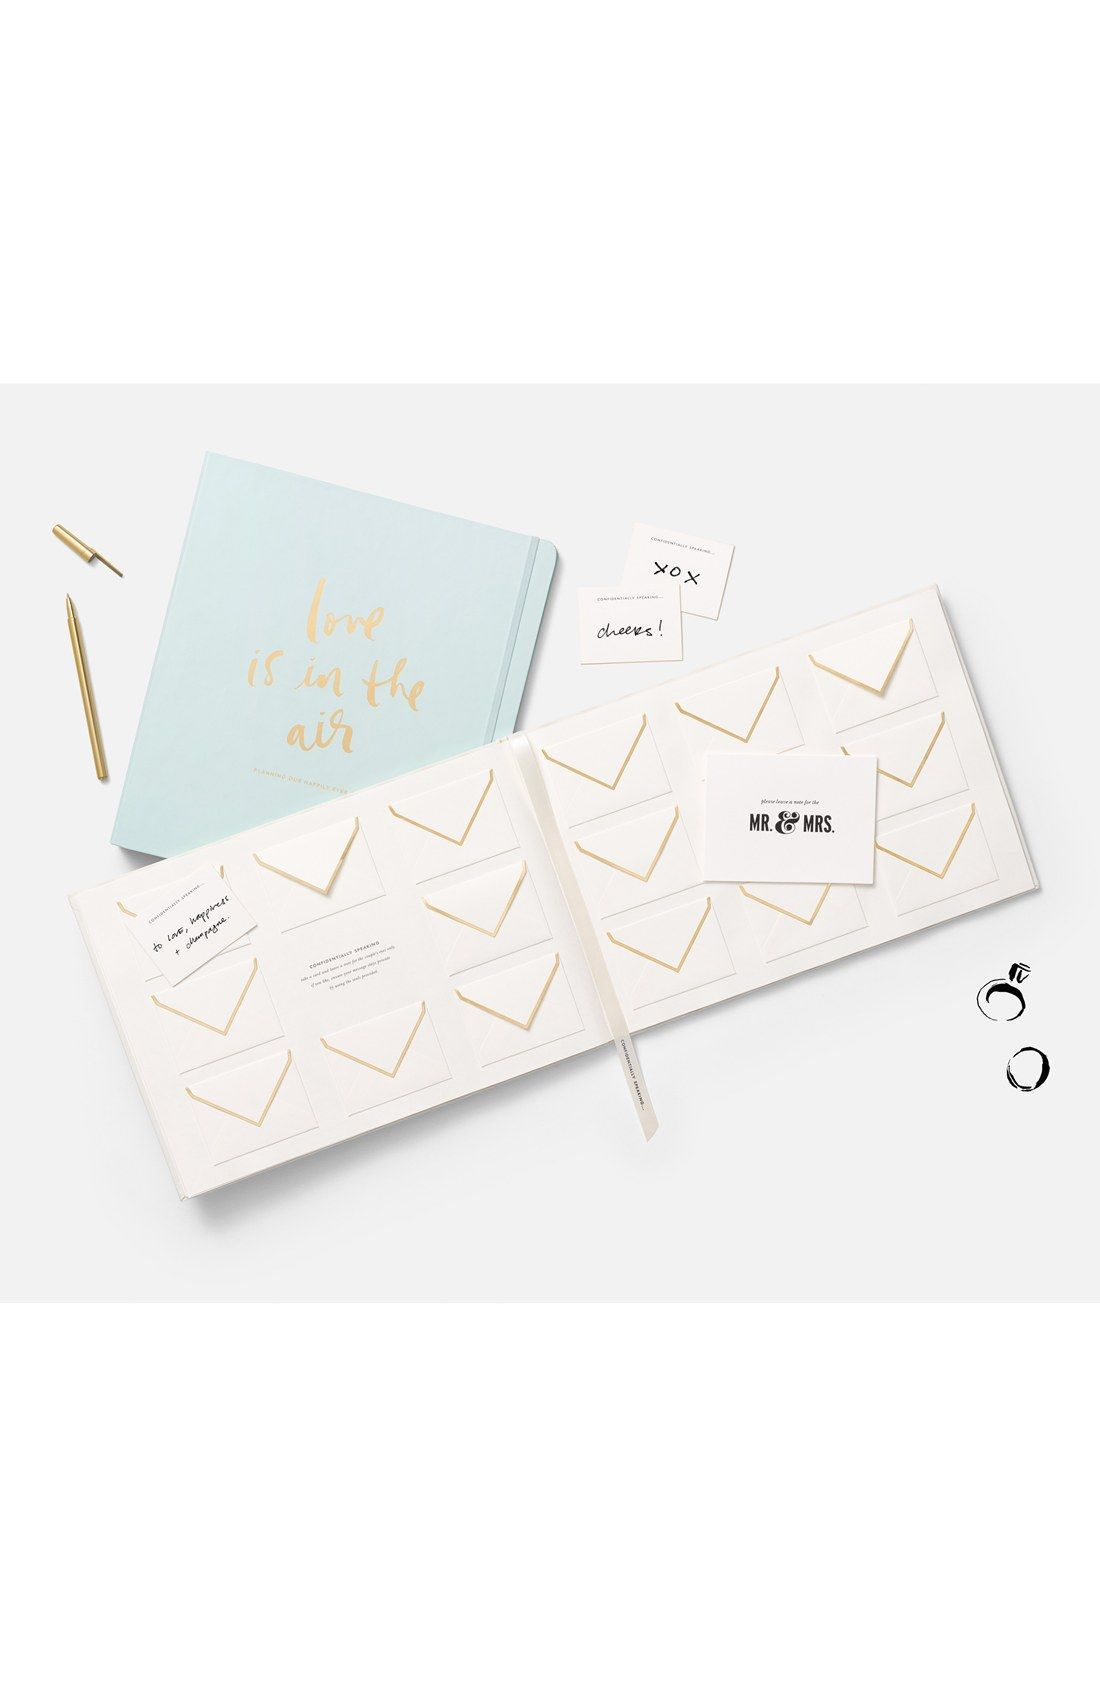 Kate Spade New York Love Is In The Air Wedding Planner Nordstrom Wedding Planner Wedding Kate Spade New York